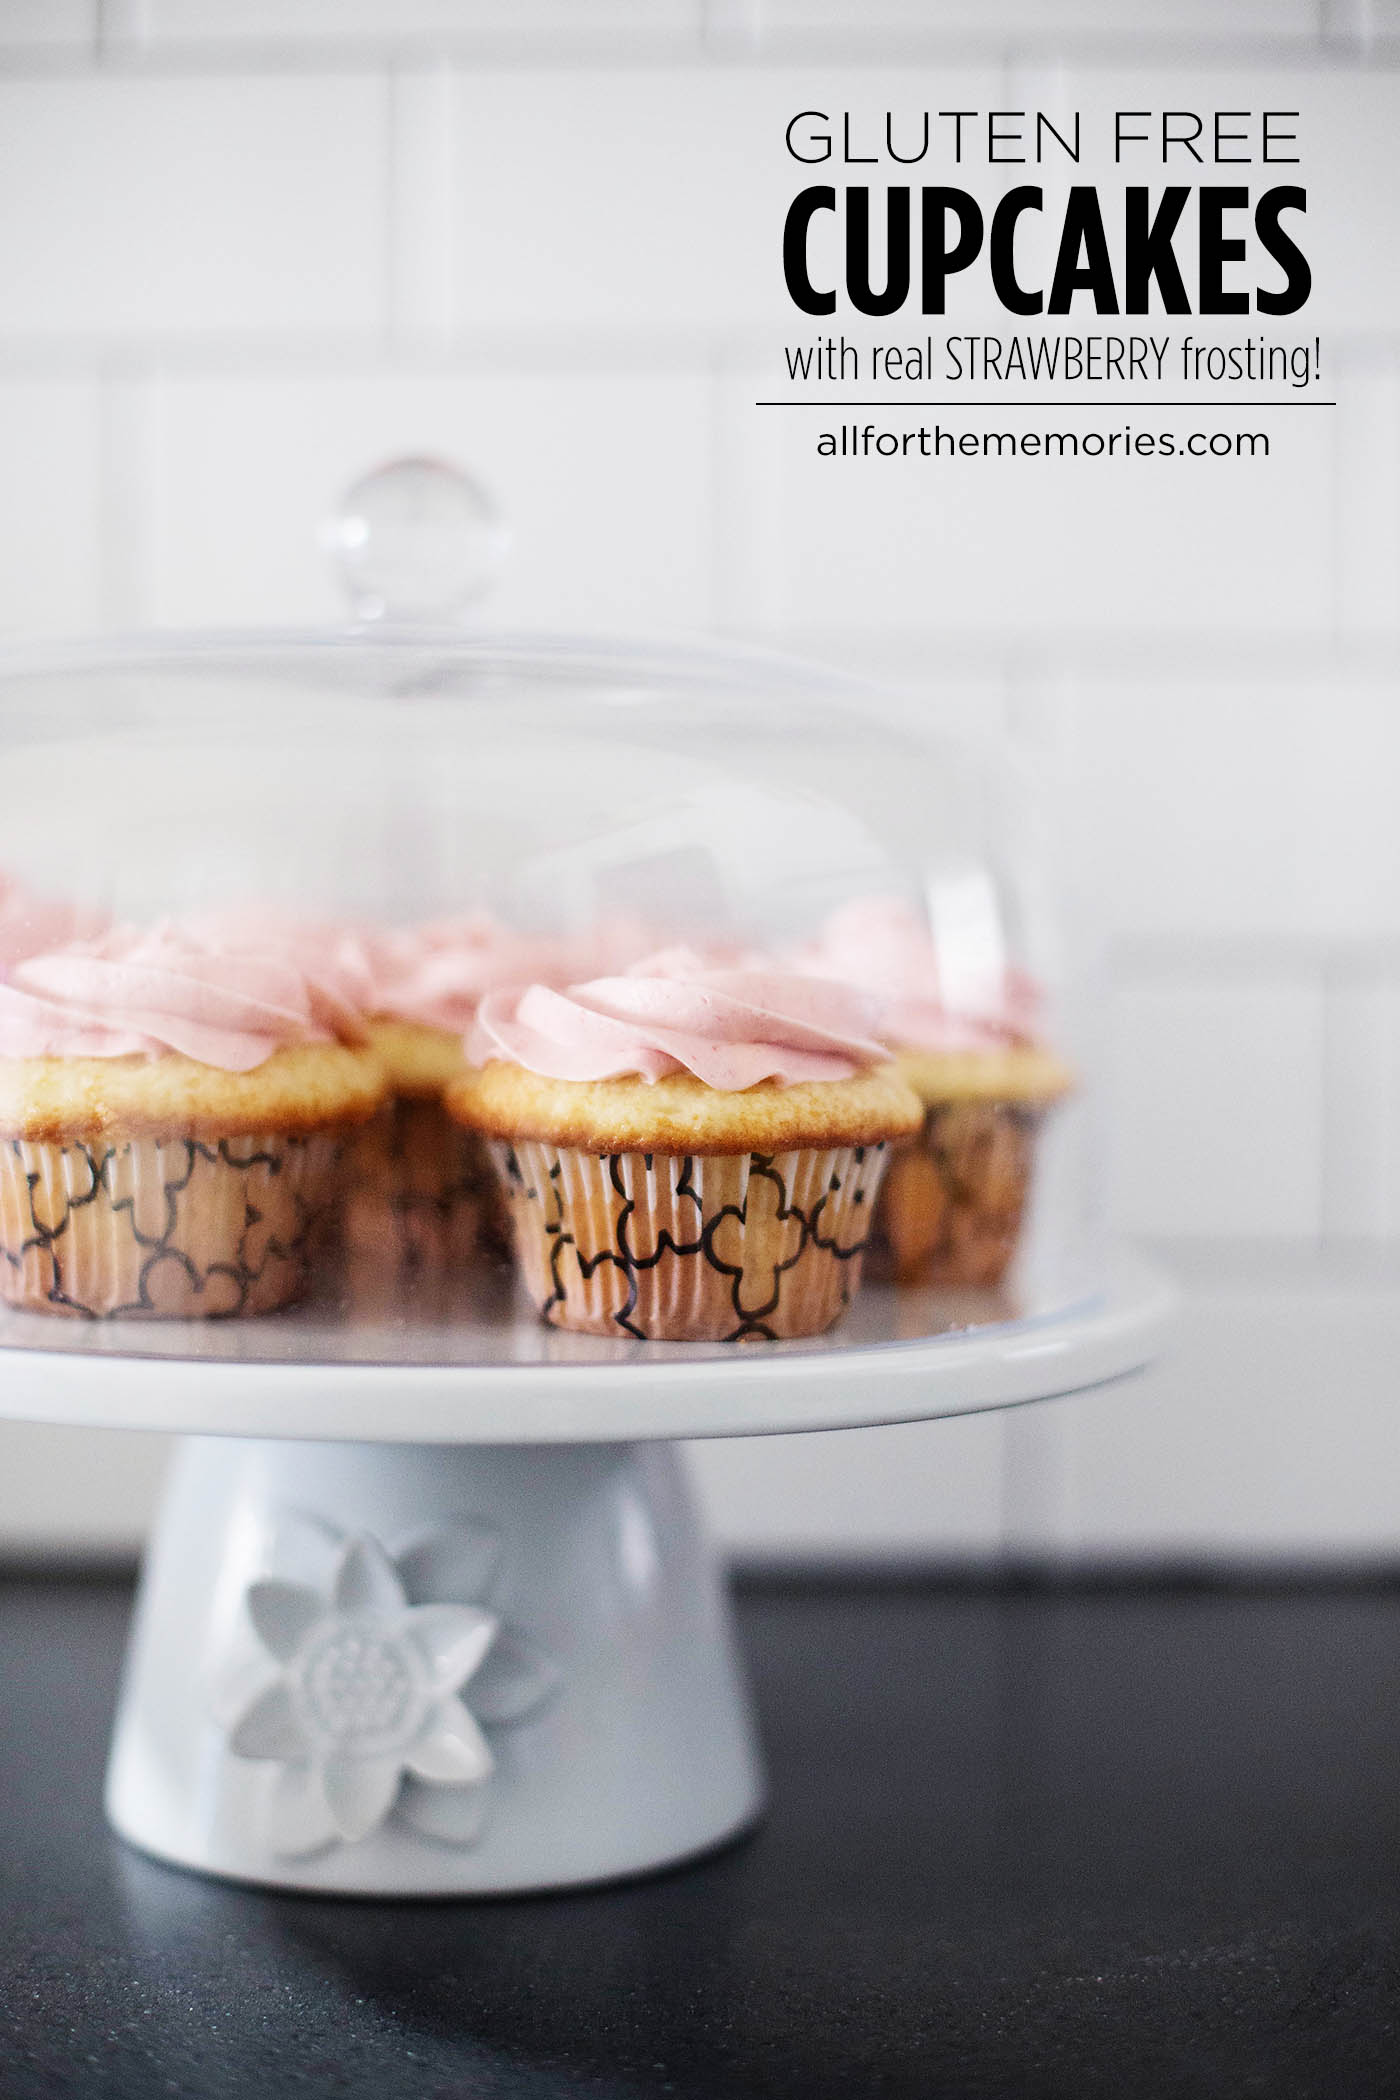 The BEST gluten free cupcakes with real strawberry frosting